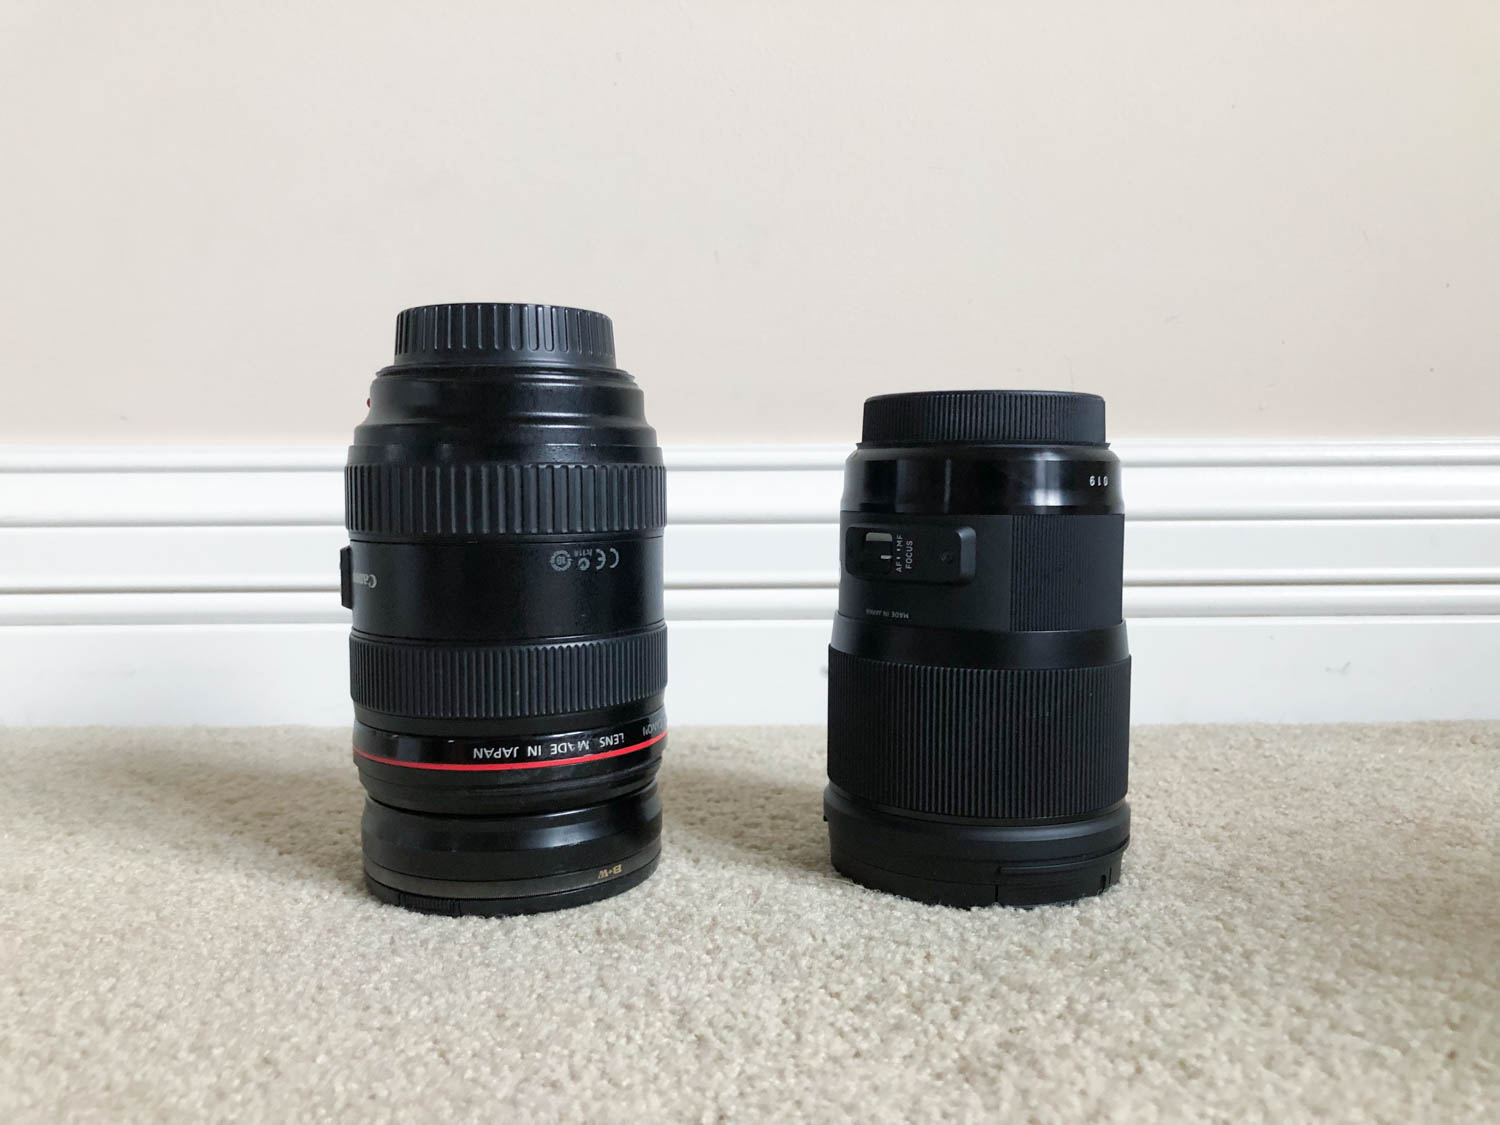 Karthika Gupta Photography Sigma 28mm f1.4 review